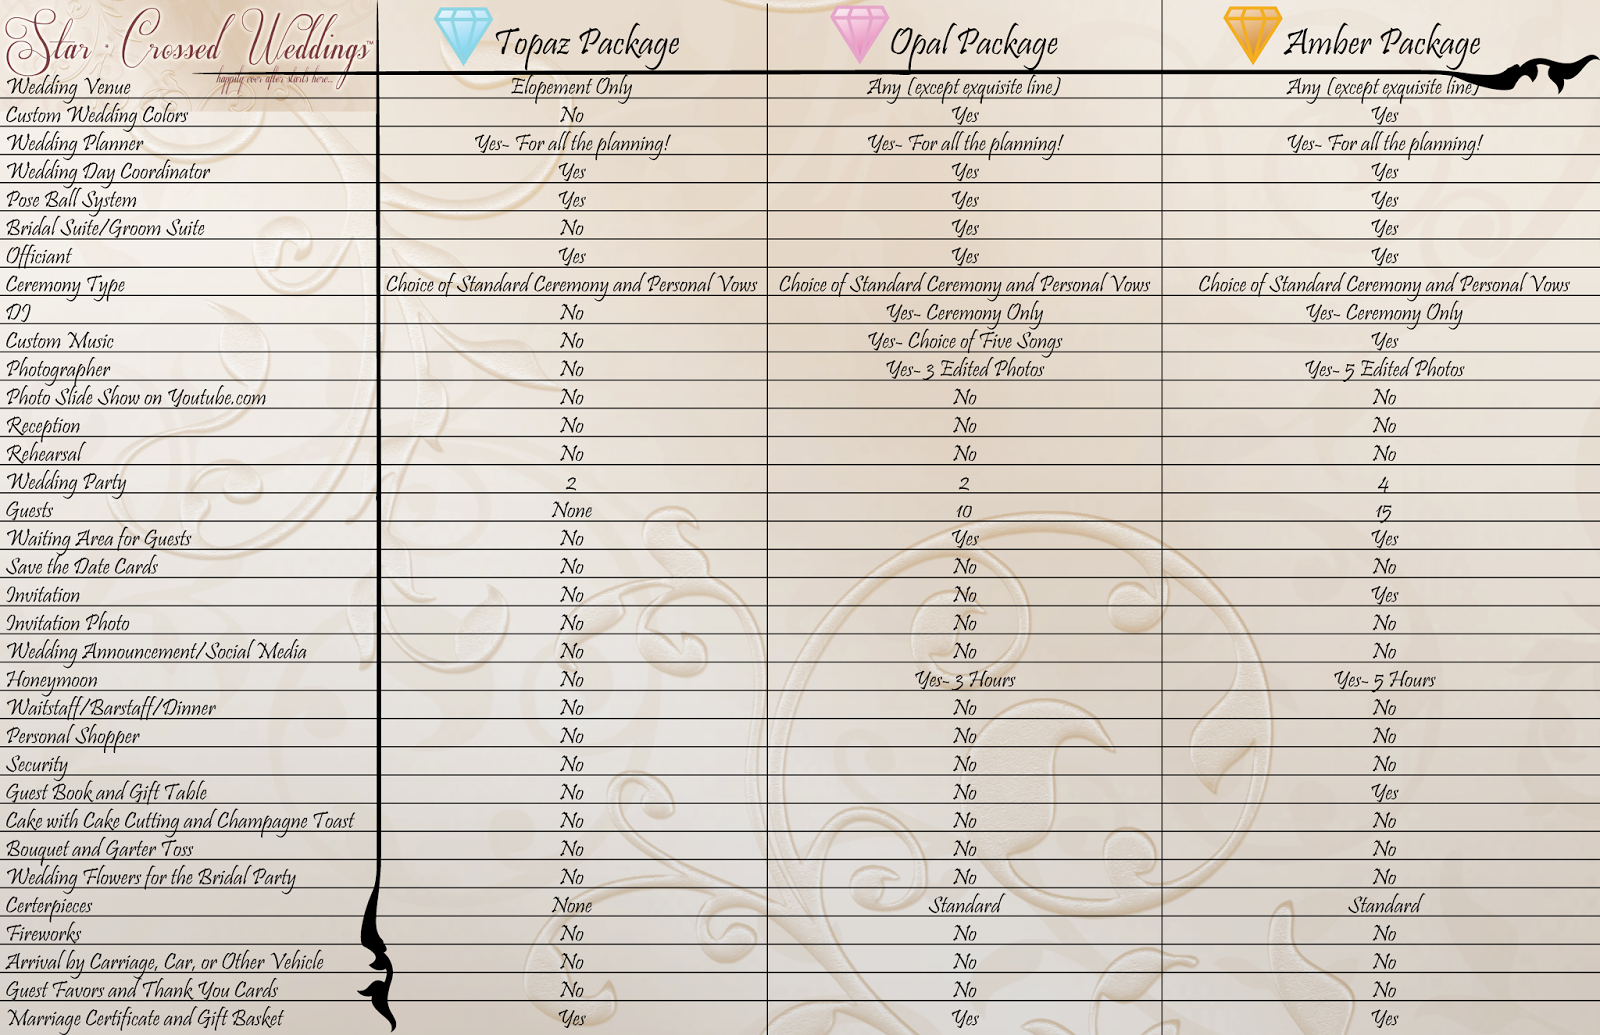 Wedding Package Comparison Chart Full Service